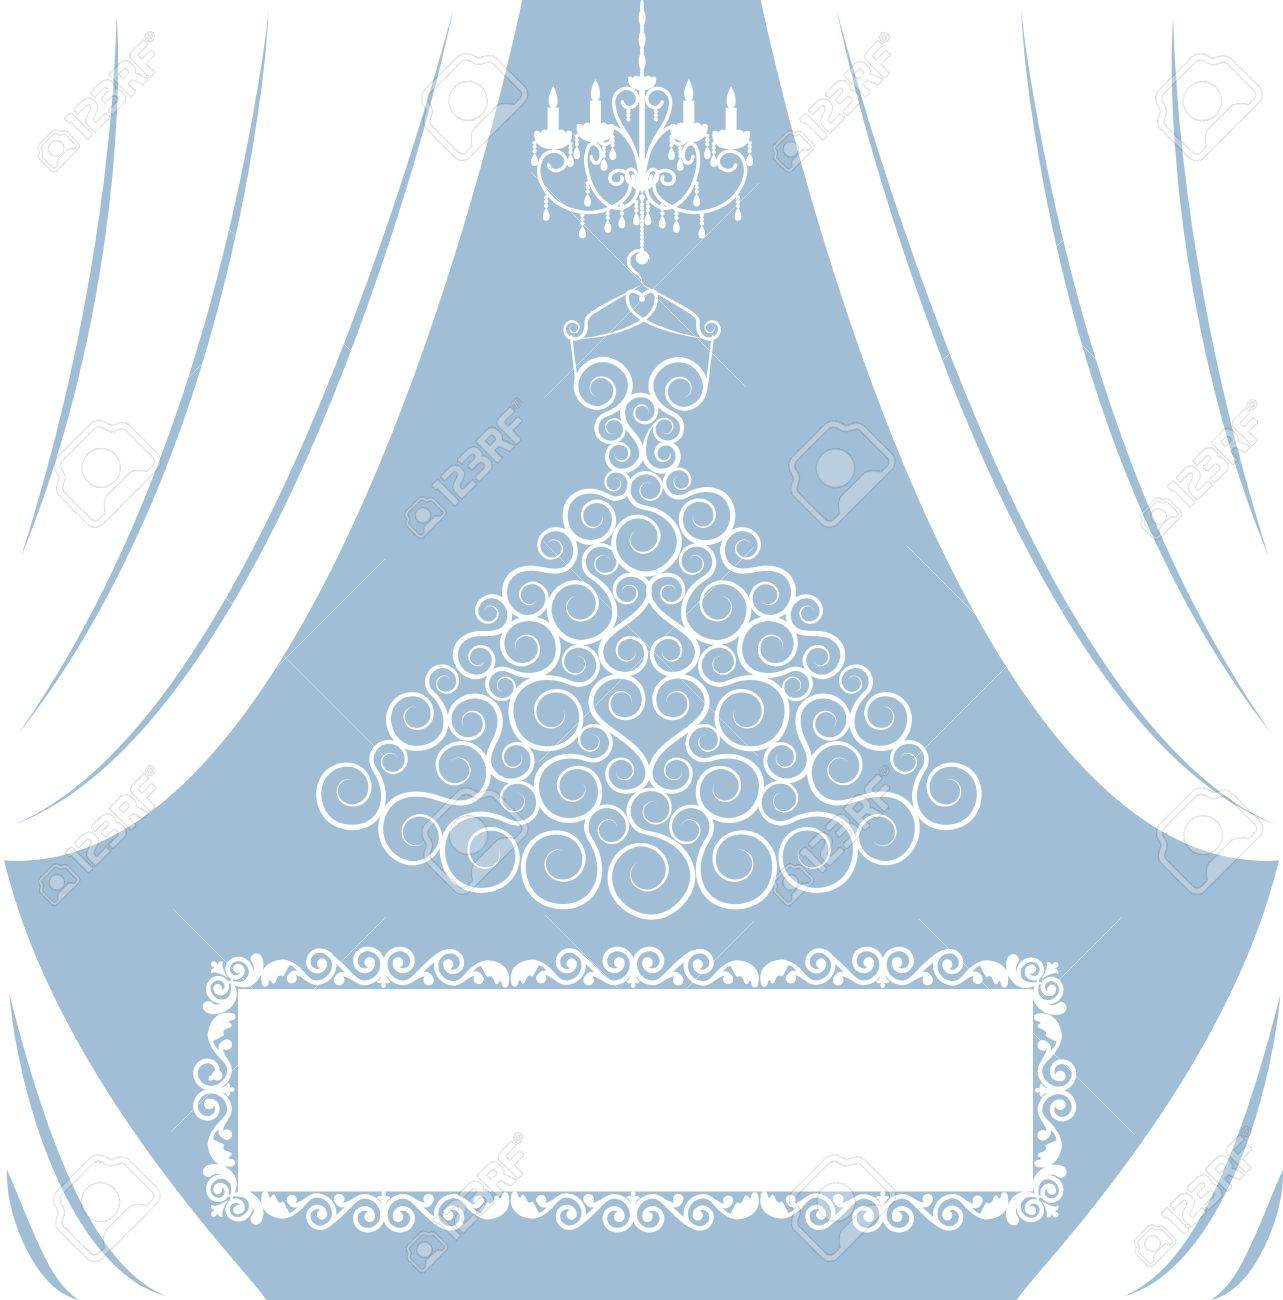 100 christmas cards with wedding photos cool homemade invit